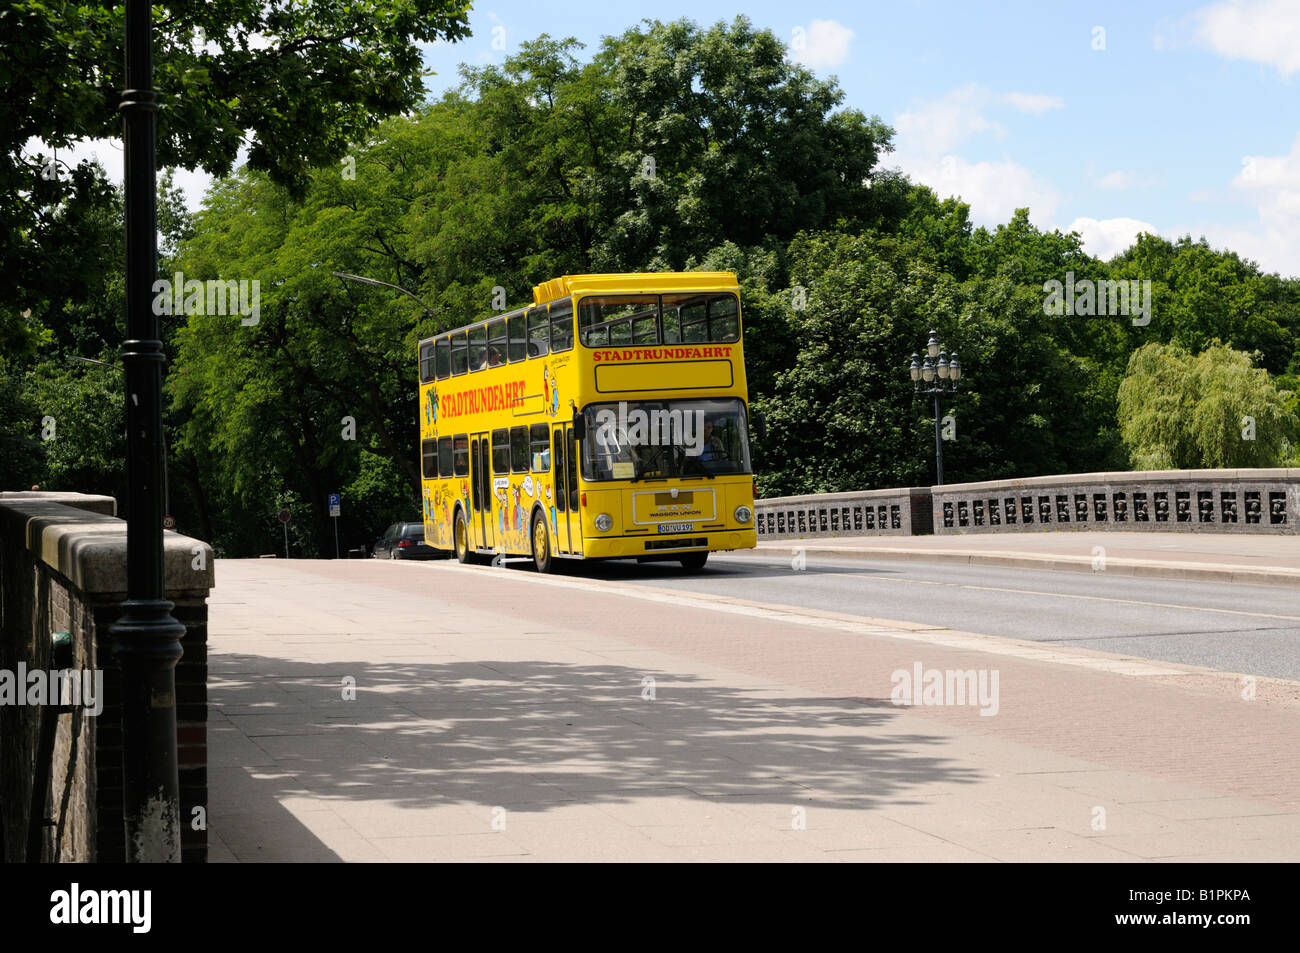 Stadtrundfahrt im Doppeldeckerbus Hamburg Deutschland City tour in a double decker bus Hamburg Germany - Stock Image